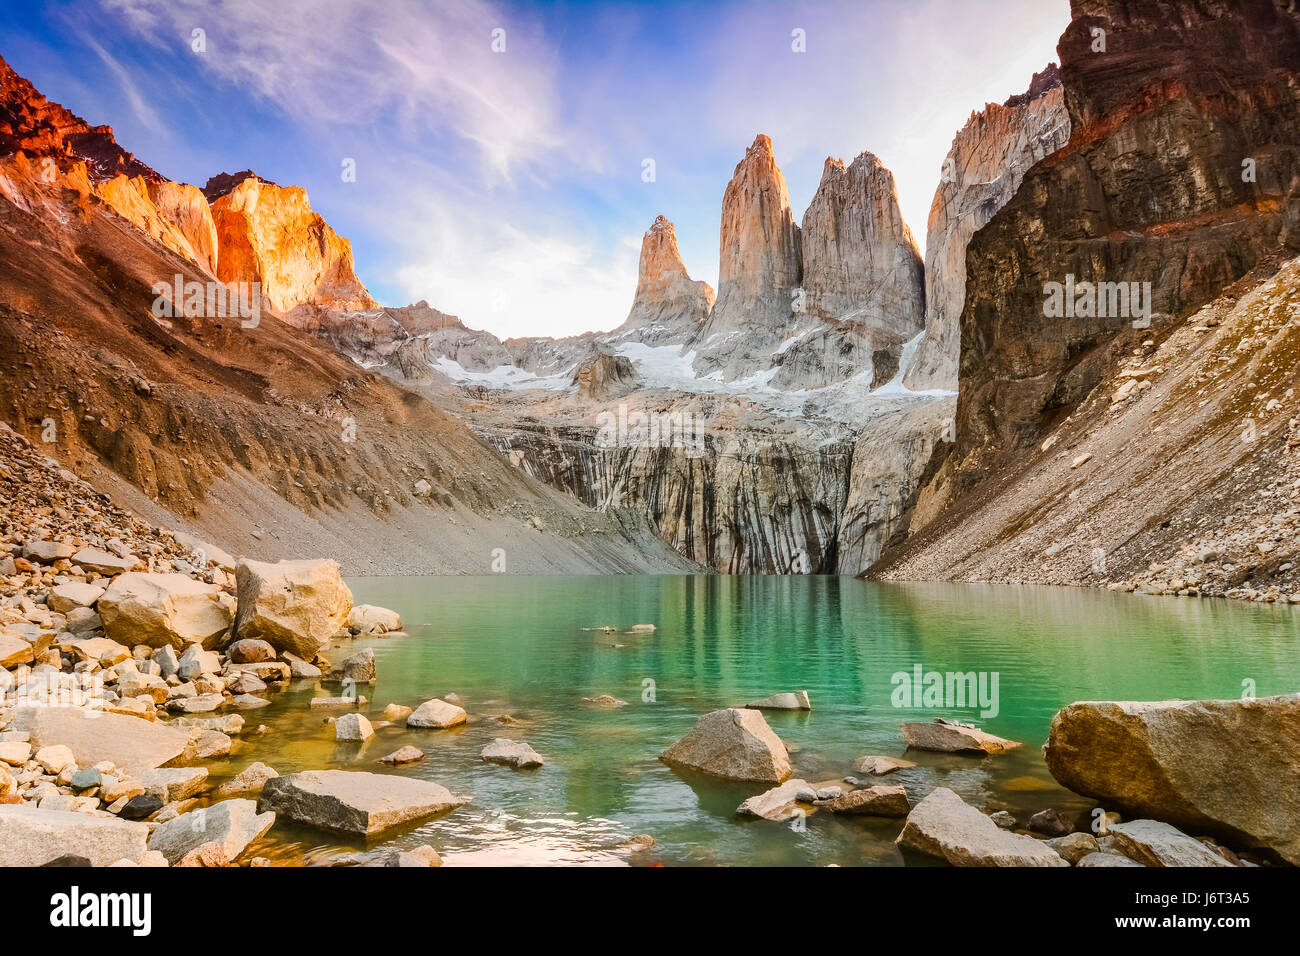 Torres del Paine Nationalpark, Patagonien, Chile Stockbild